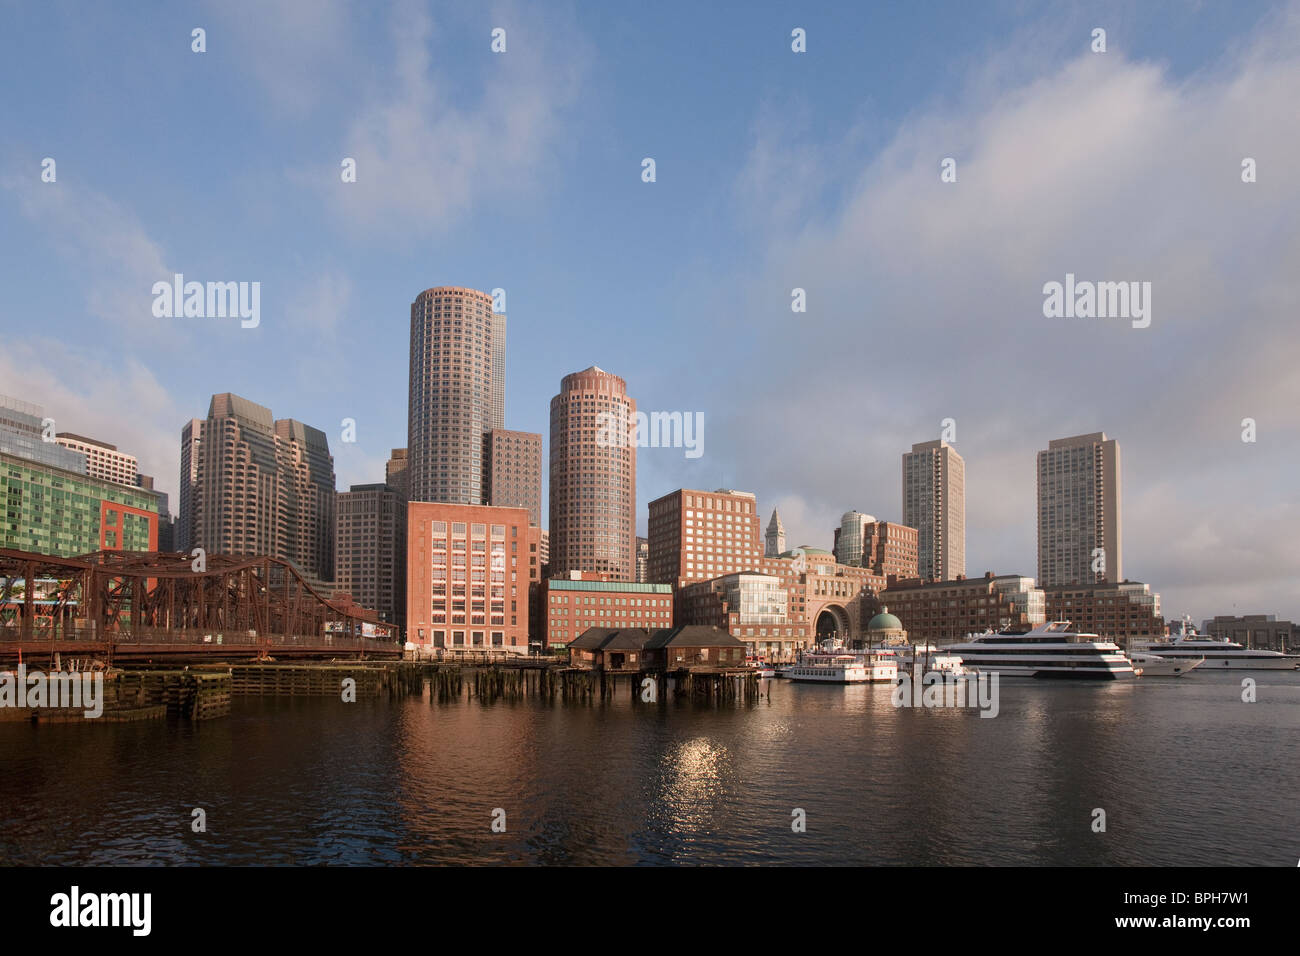 Buildings at the waterfront, Northern Avenue Bridge, Fort Point Channel, Boston, Massachusetts, USA - Stock Image